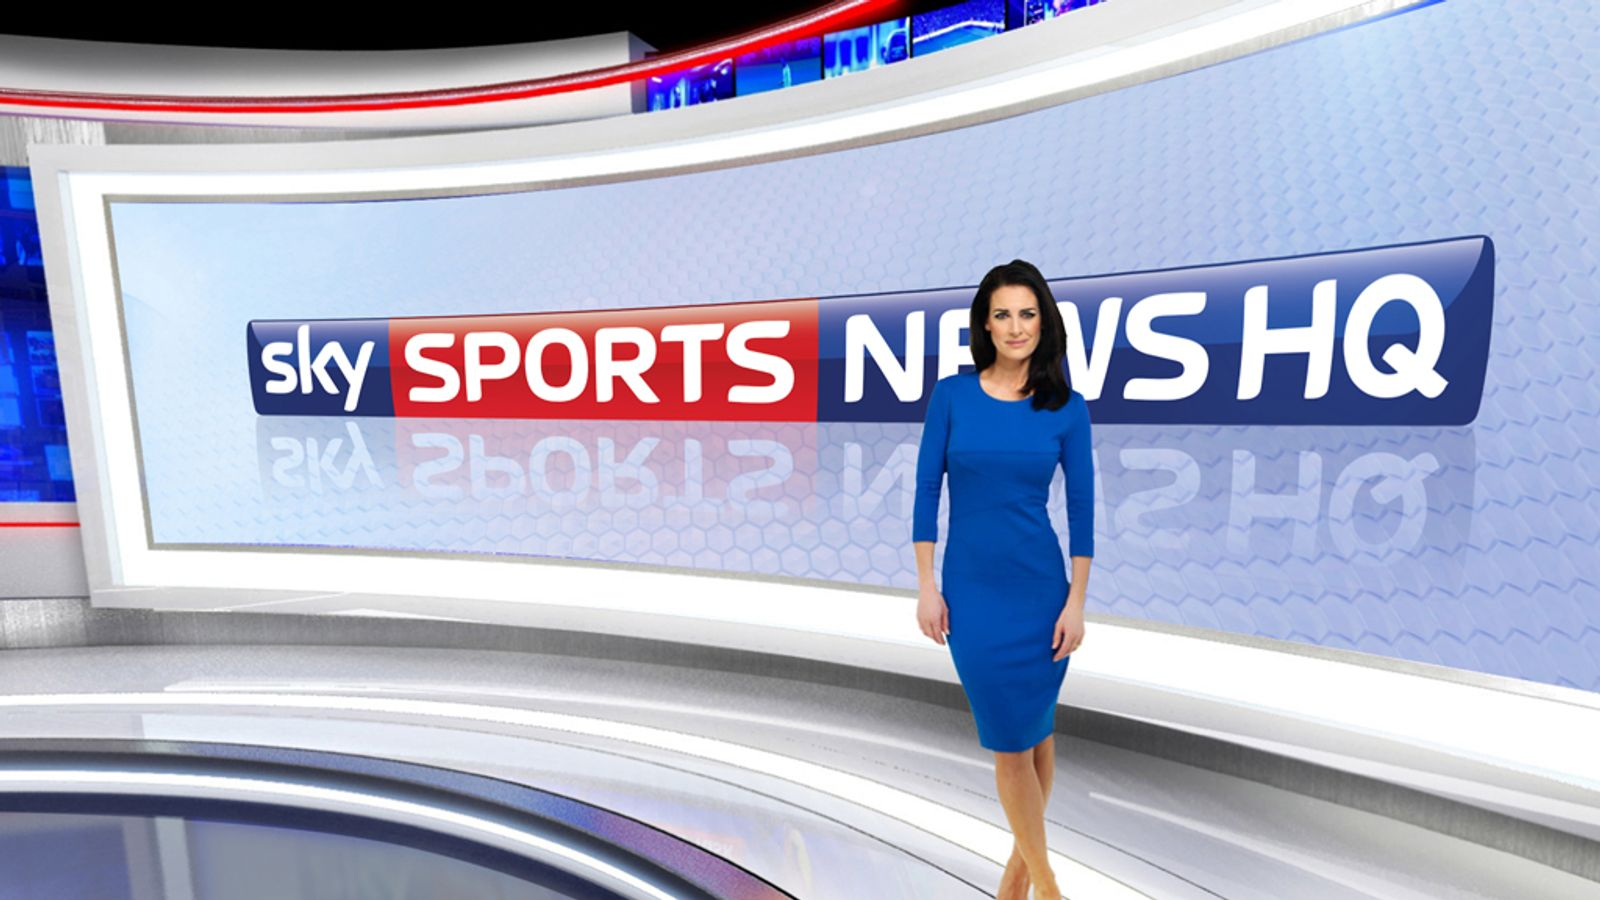 Sky Sports News HQ will launch on August 12 on the new channel of 401